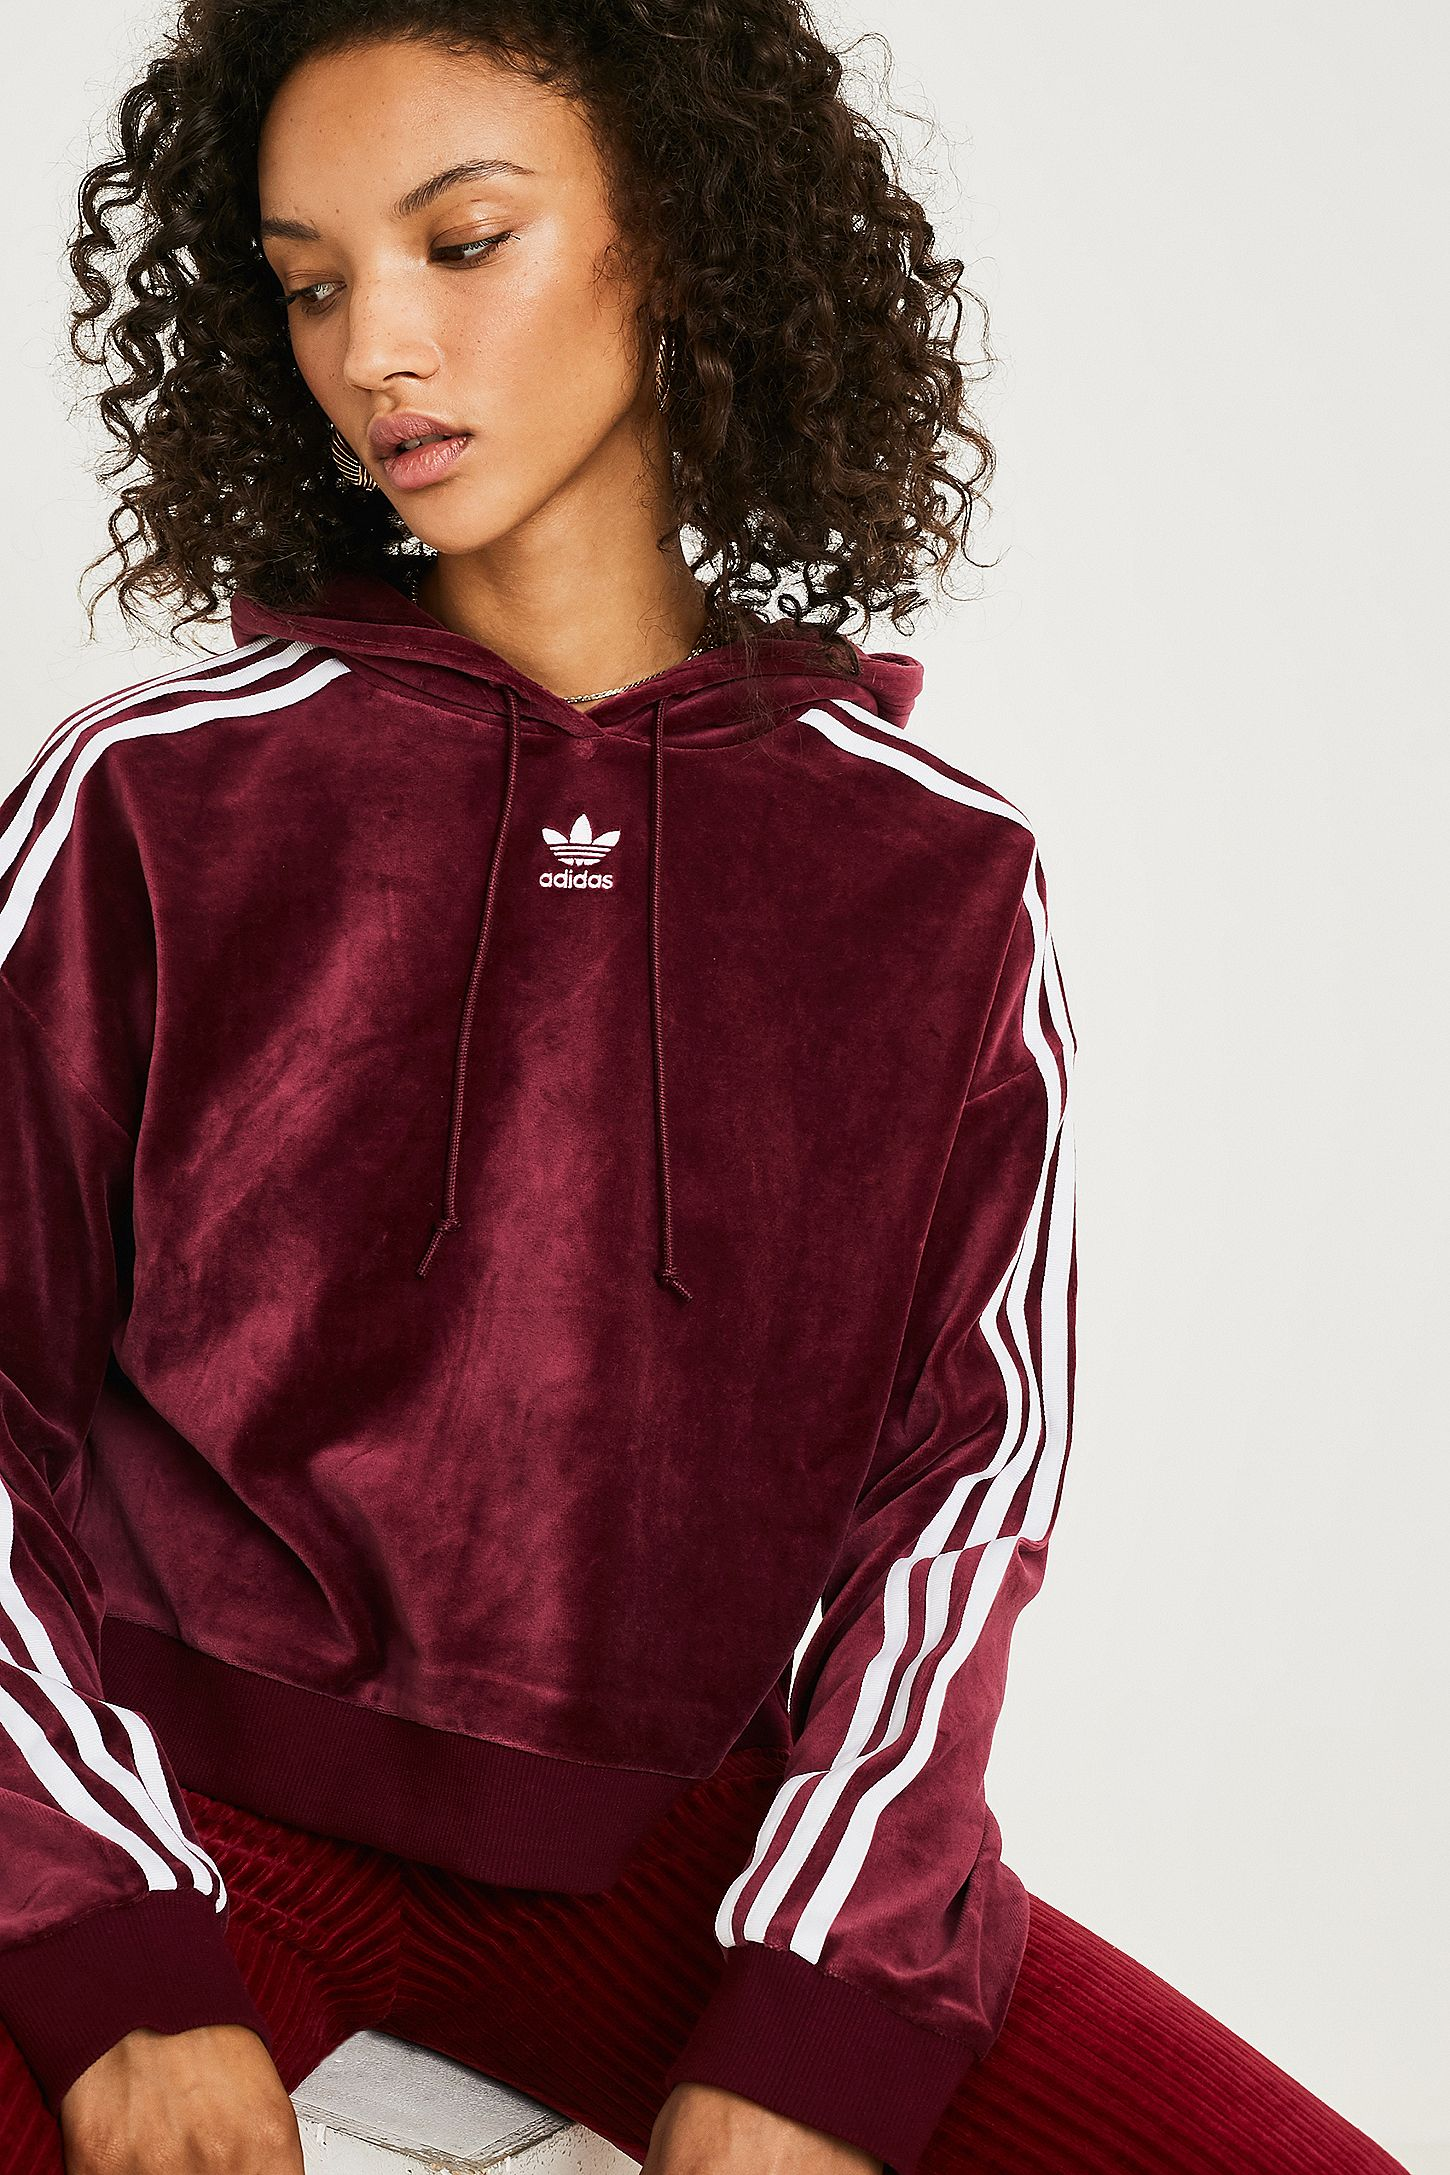 0b1176d009 adidas Originals Maroon Velour Cropped Hoodie | Urban Outfitters UK